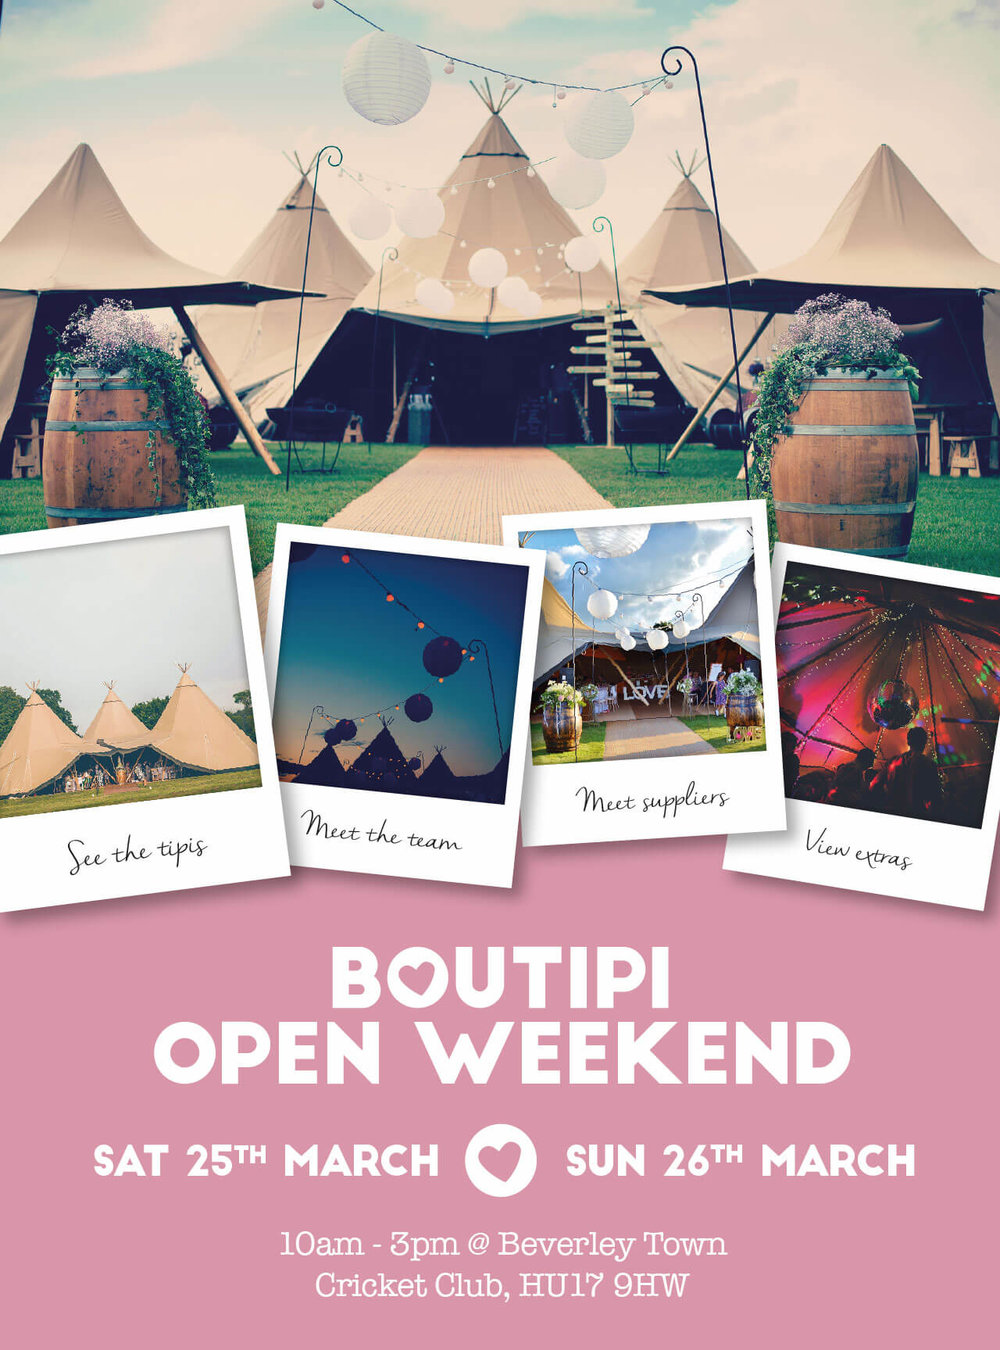 Boutipi open weekend